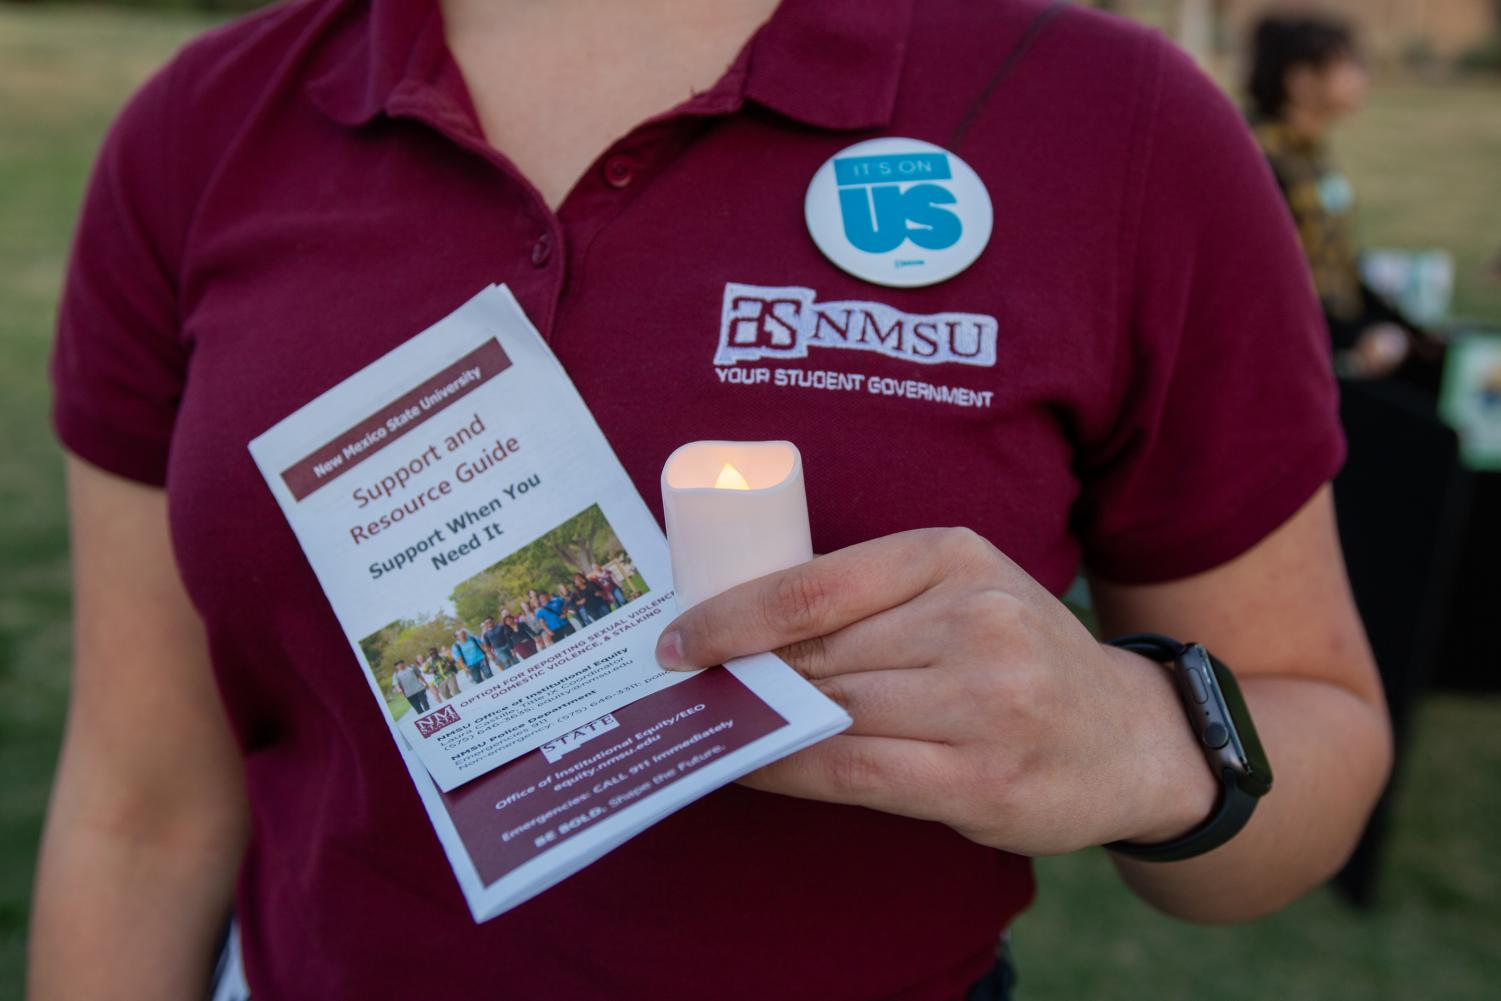 It's On Us is a sexual assault awareness campaign that has been on NMSU's campus for a week now.